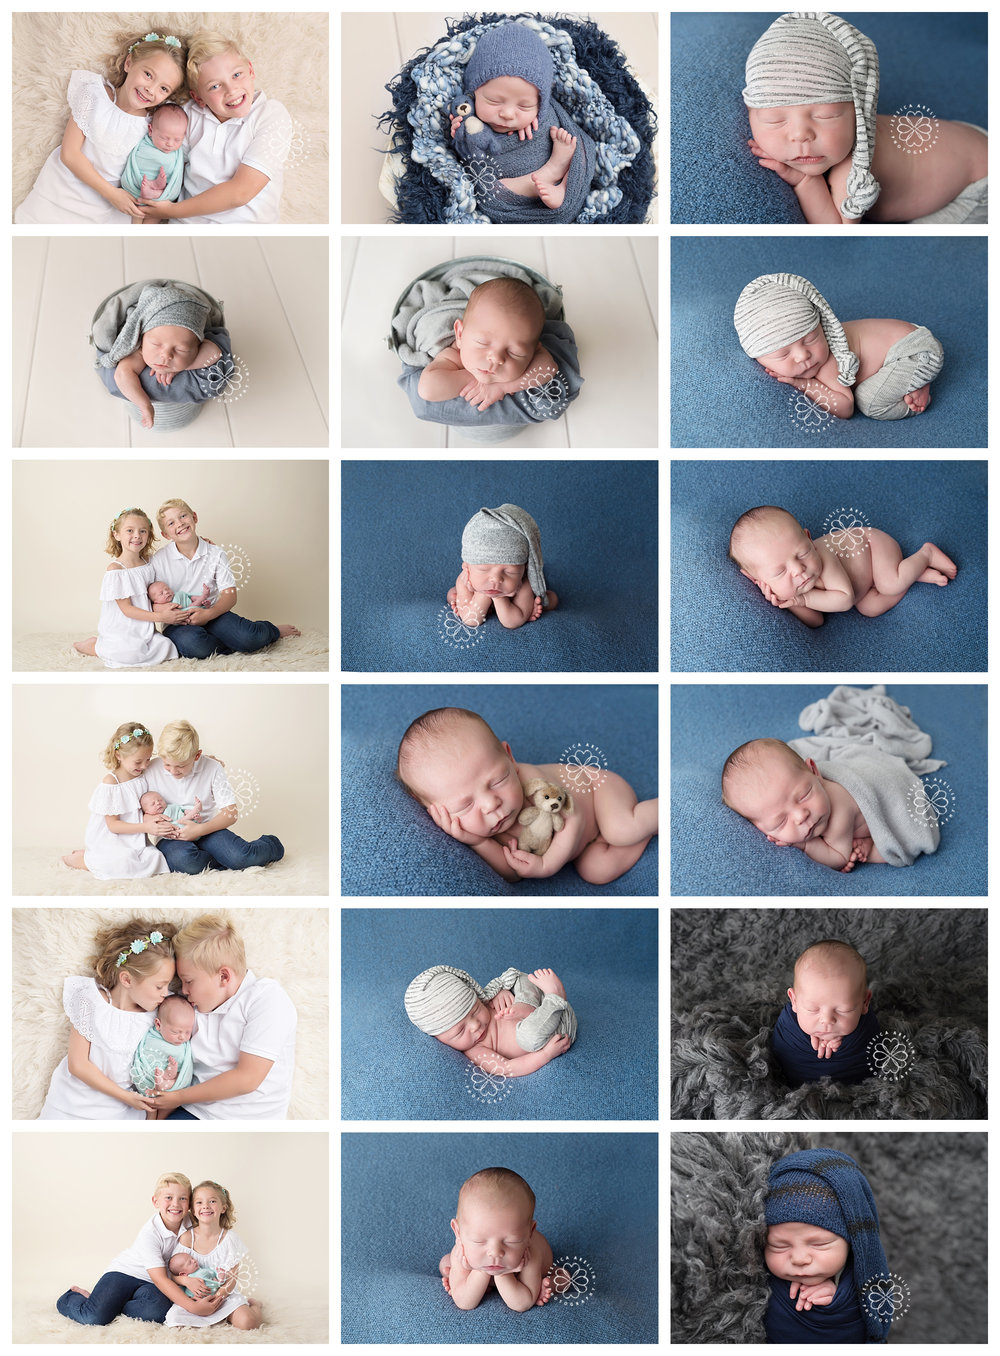 Newborn photography Session Denver Colorado